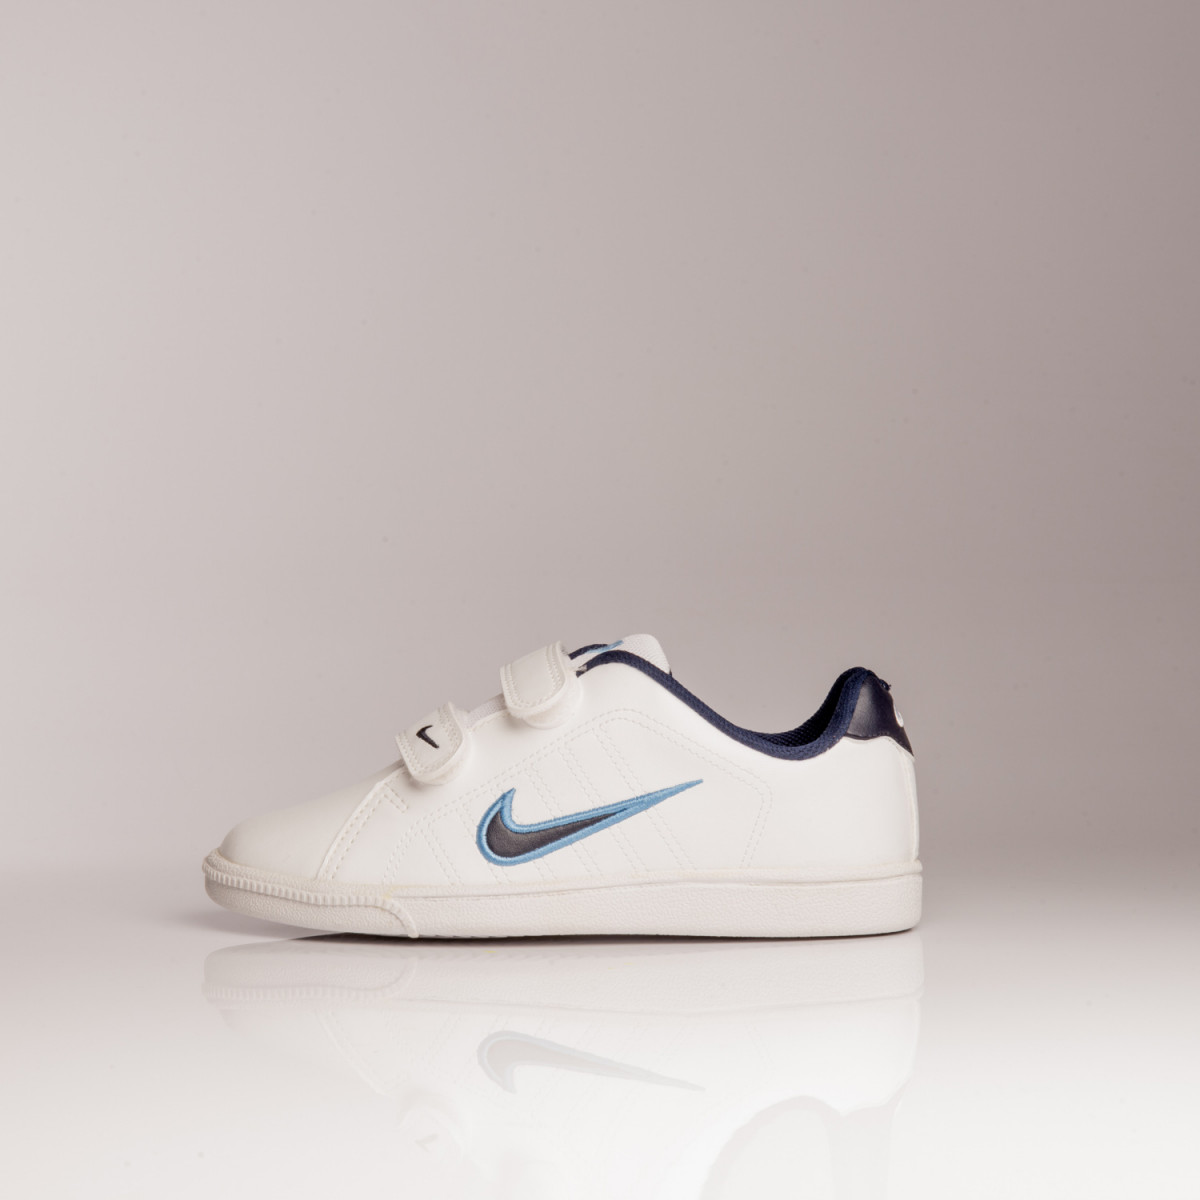 ZAPATILLAS NIKE COURT TRADITION PSV